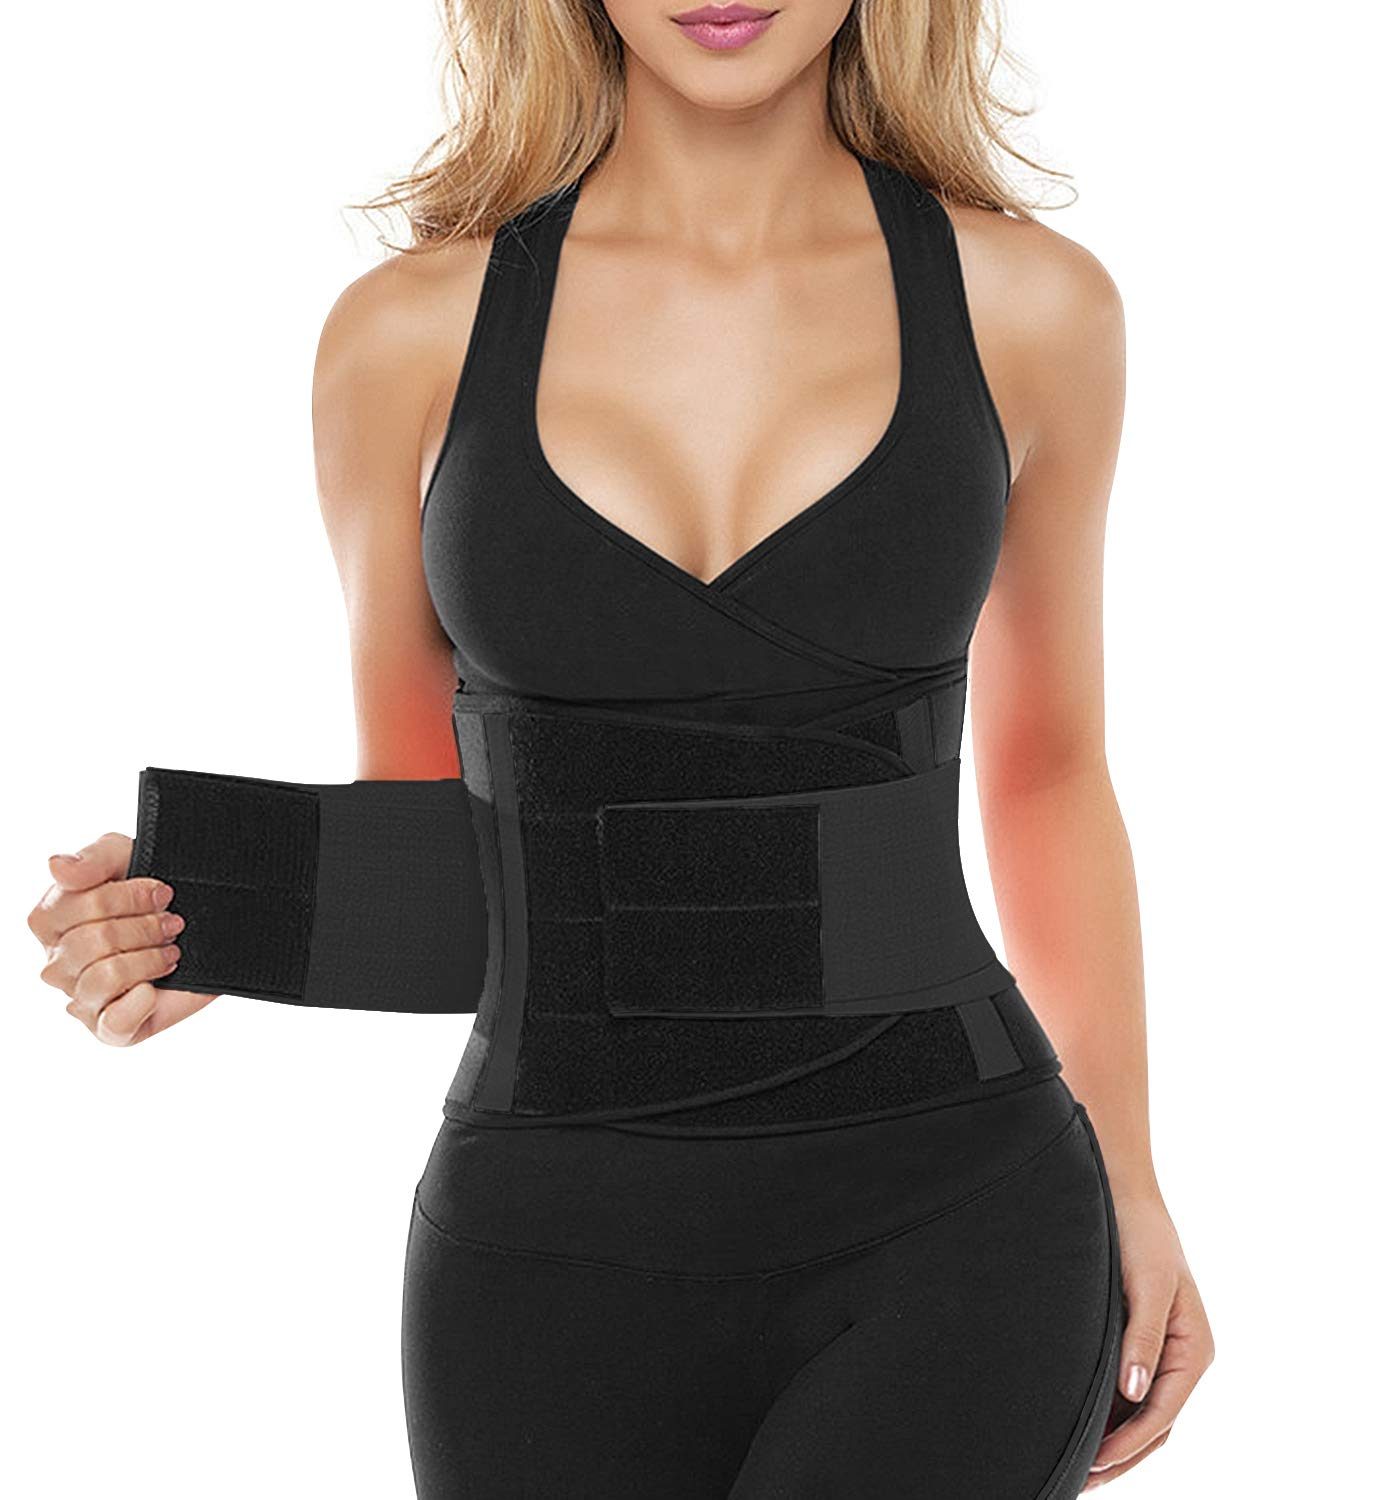 SHAPERX Waist Trainer Belt Body Shaper